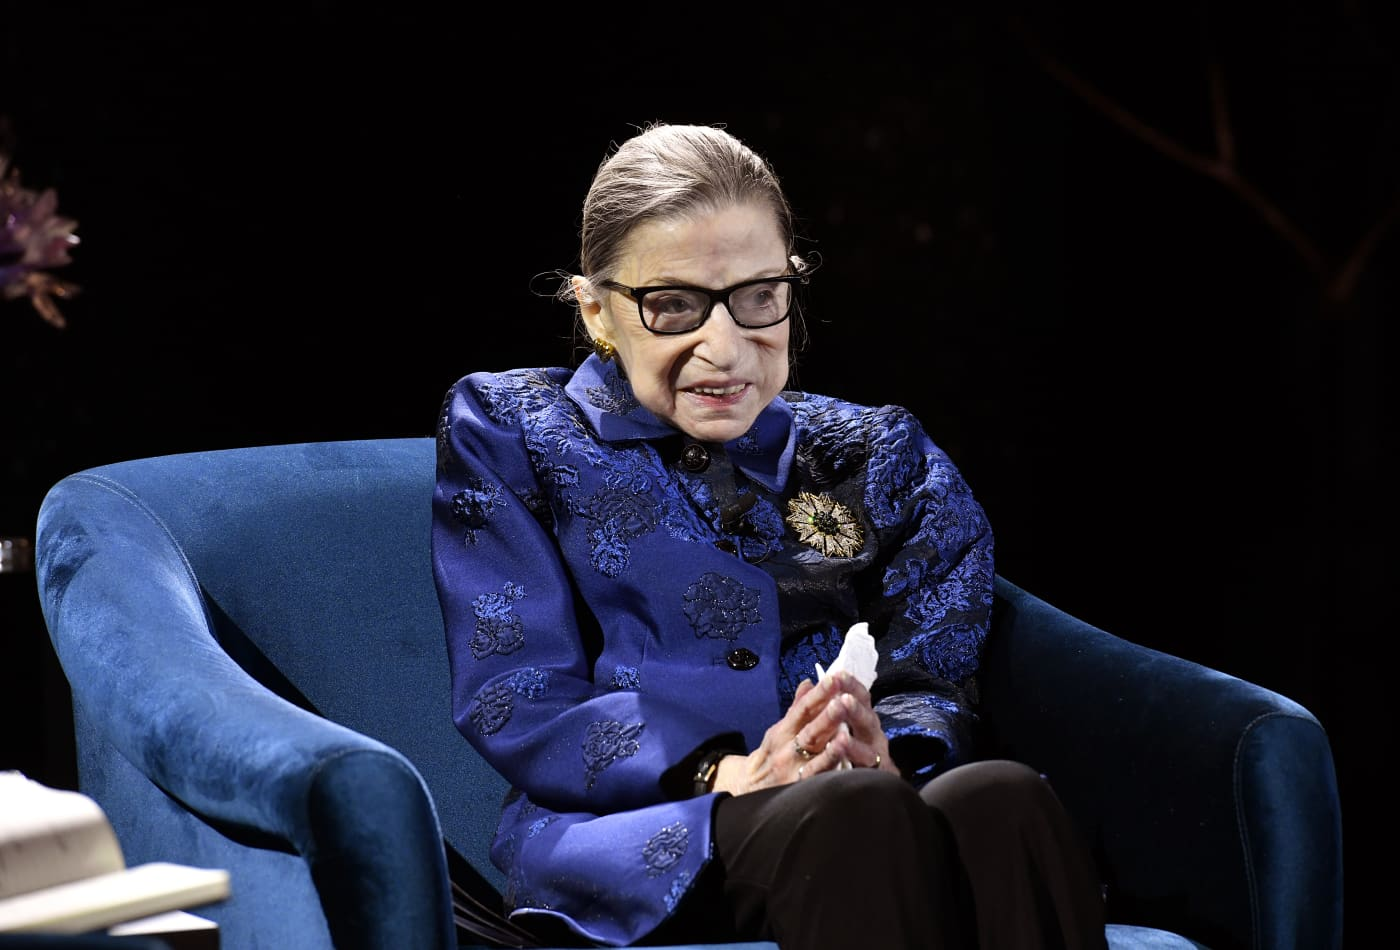 Justice Ruth Bader Ginsburg says she's 'cancer-free' after a flurry of health concerns